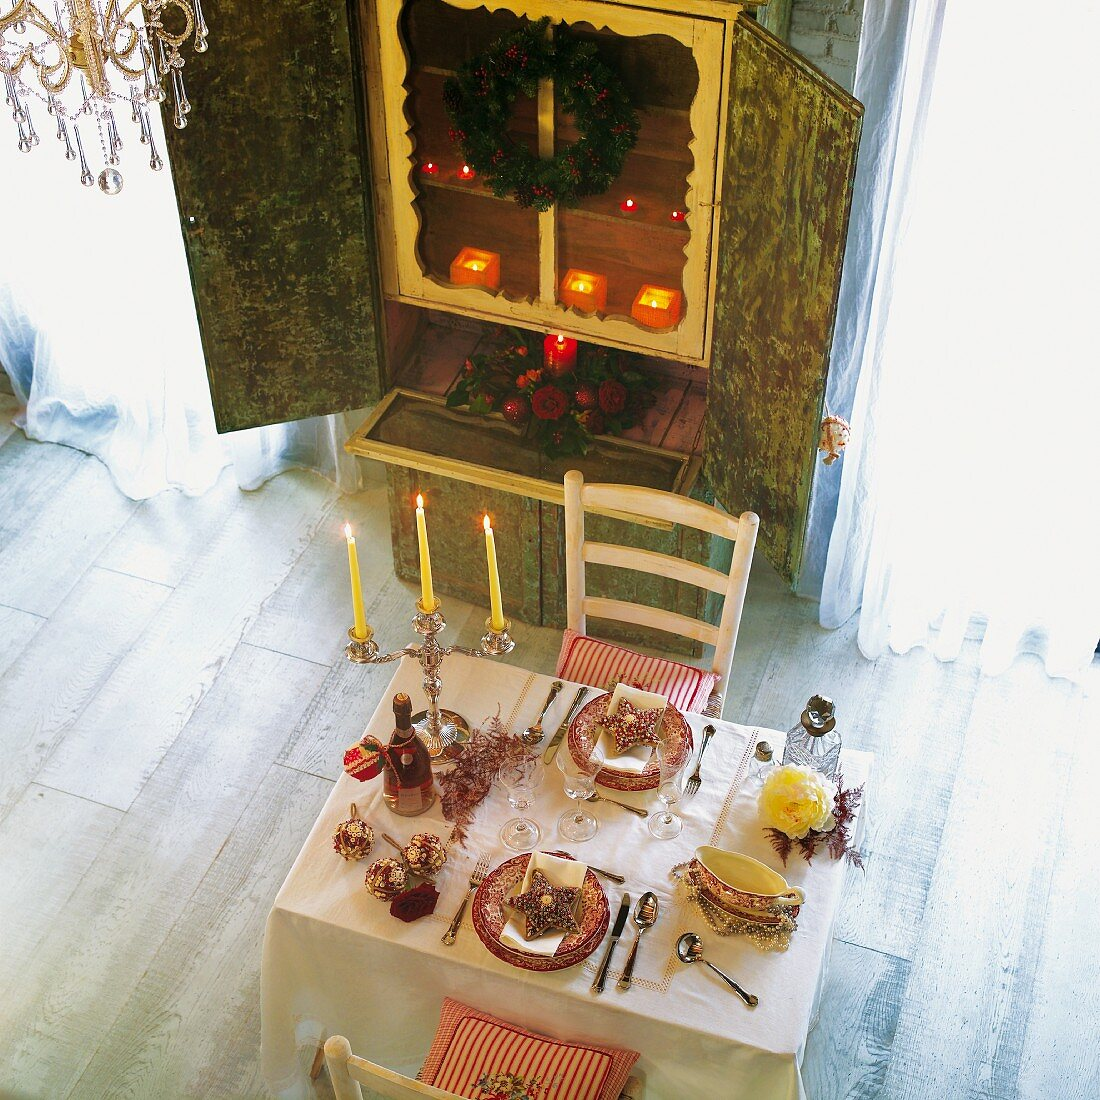 Laid table with Christmas decorations